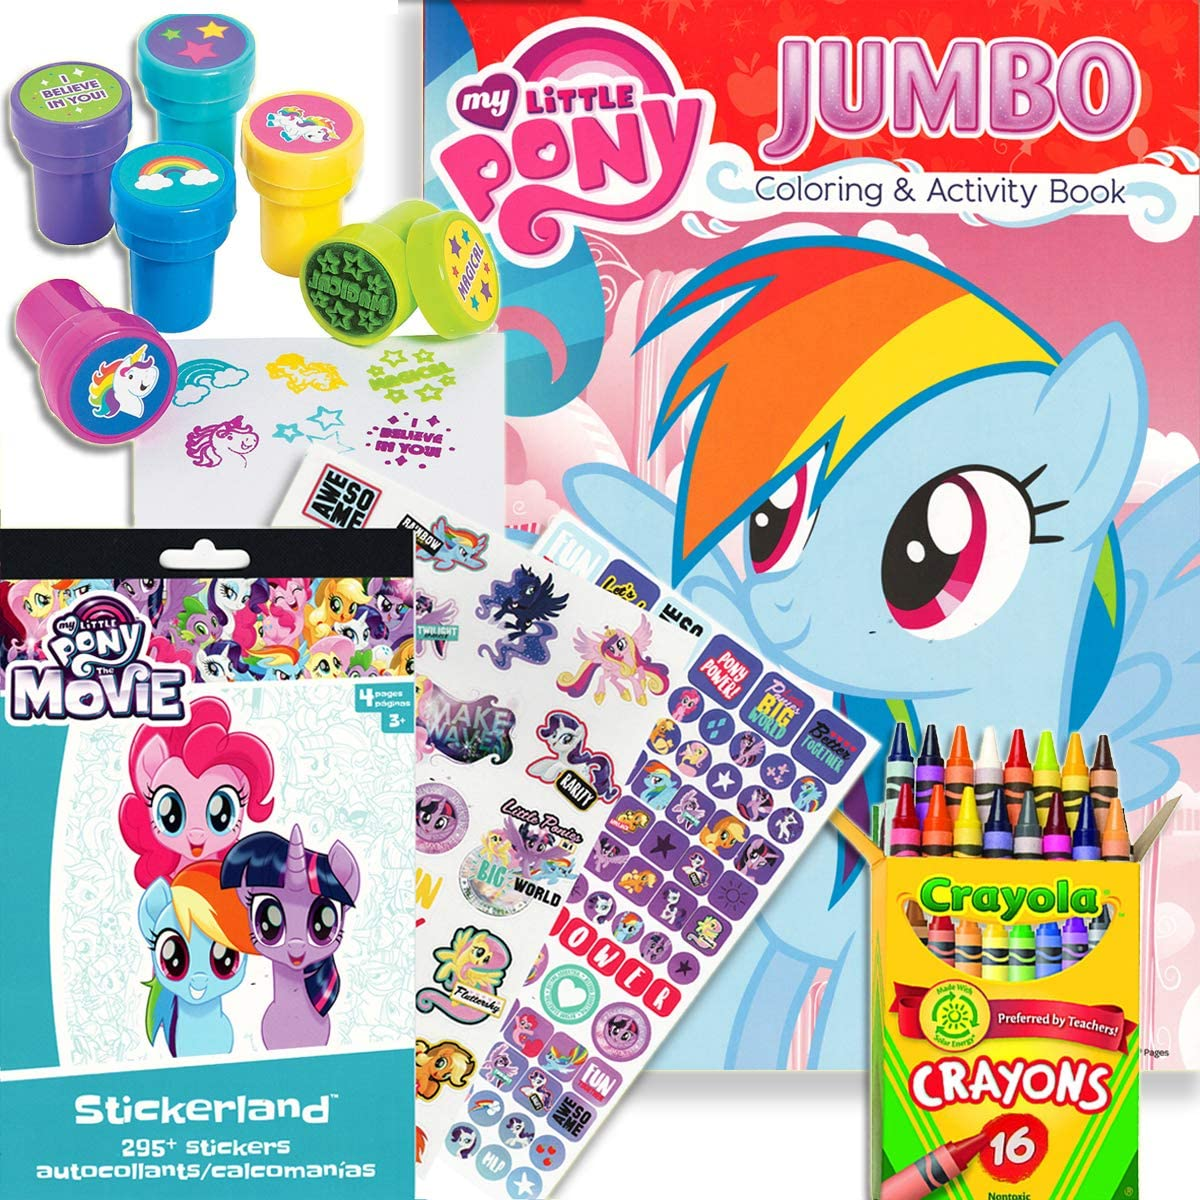 - Amazon.com: My Little Pony Coloring & Activity Book With MLP The